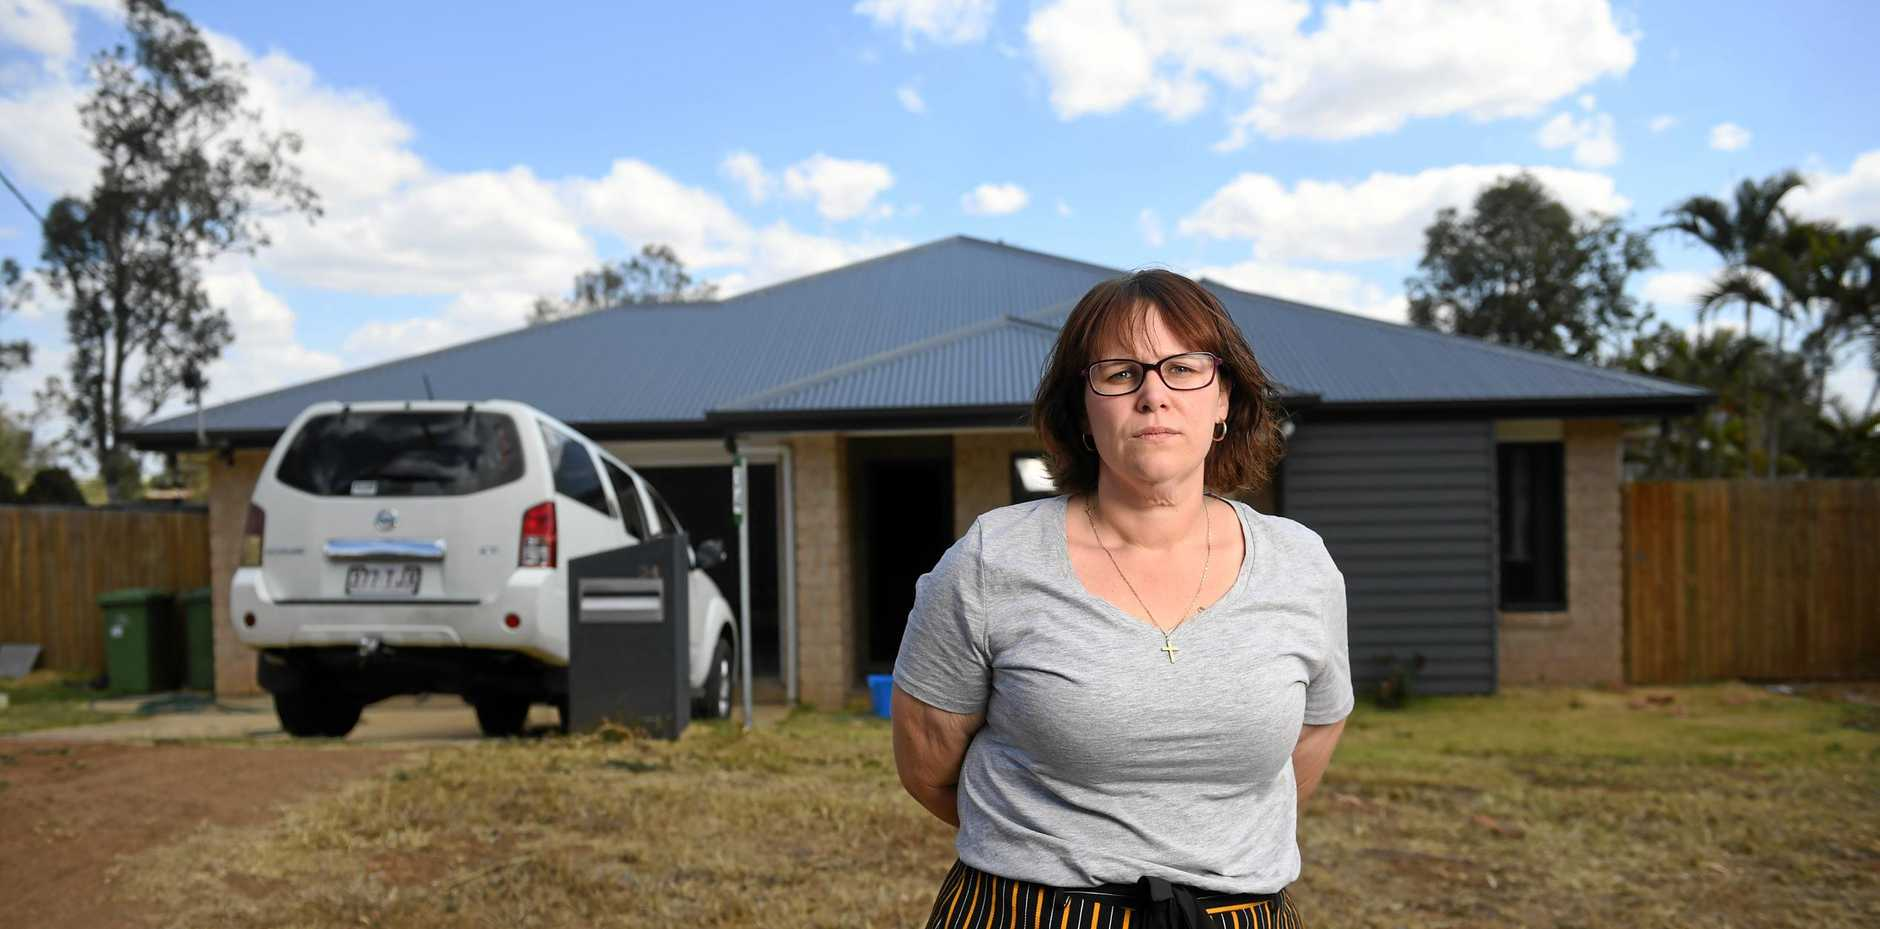 FED UP: Rachel Thorley and her partner moved into their newly built home at Fernvale a year ago. They have been left frustrated with a number of defects to the house and struggled to get help after G.J Gardner's North Ipswich franchise went bust in January.